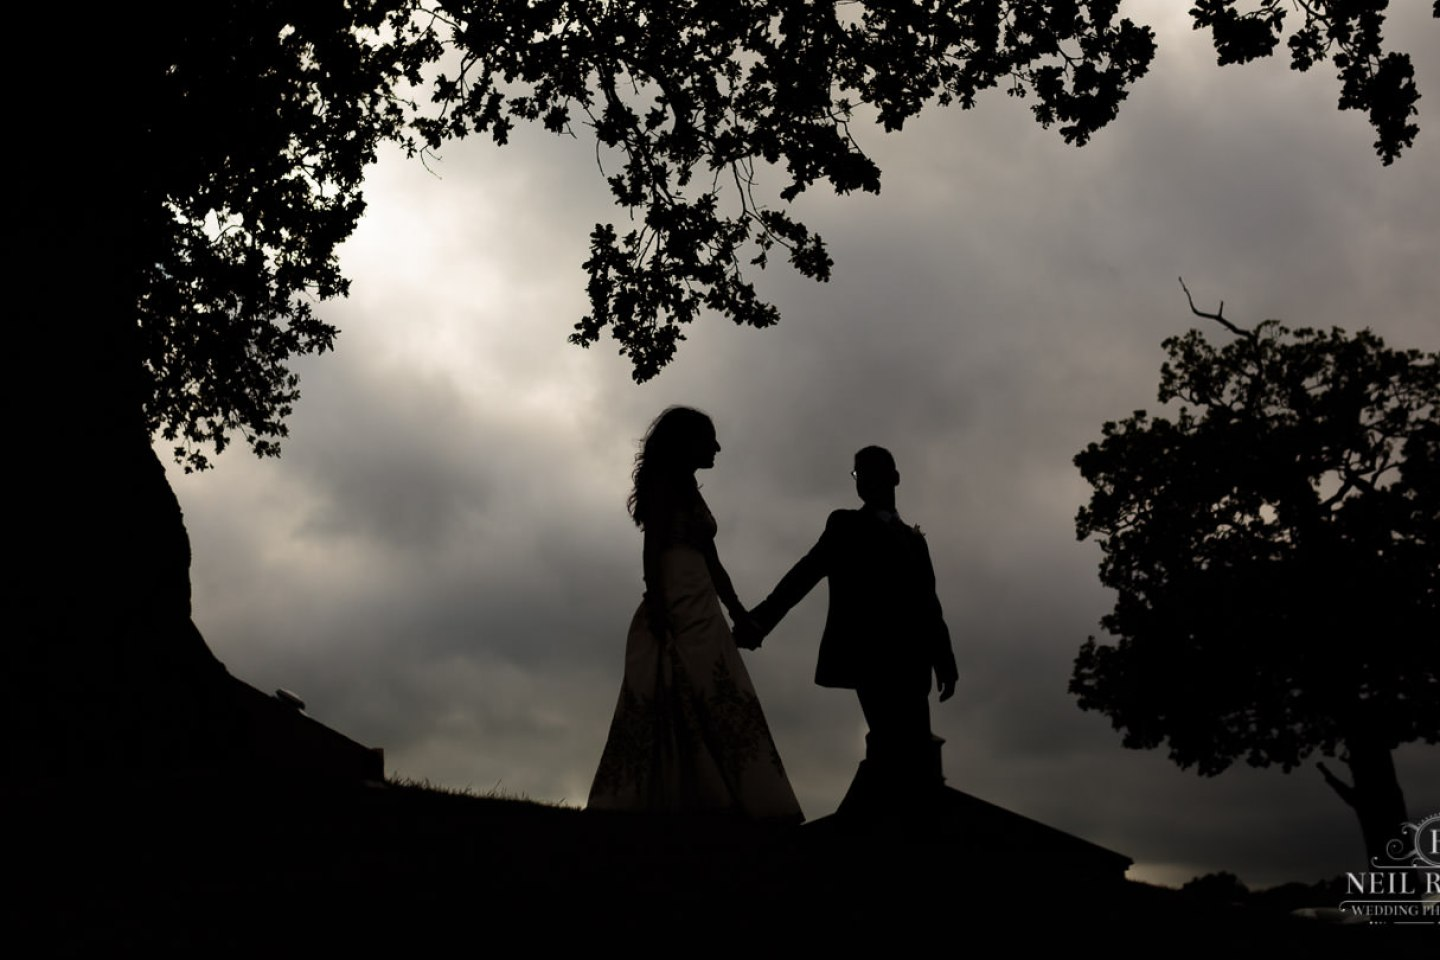 Merrydale Manor Wedding Photographer - Bride and Groom silhouette